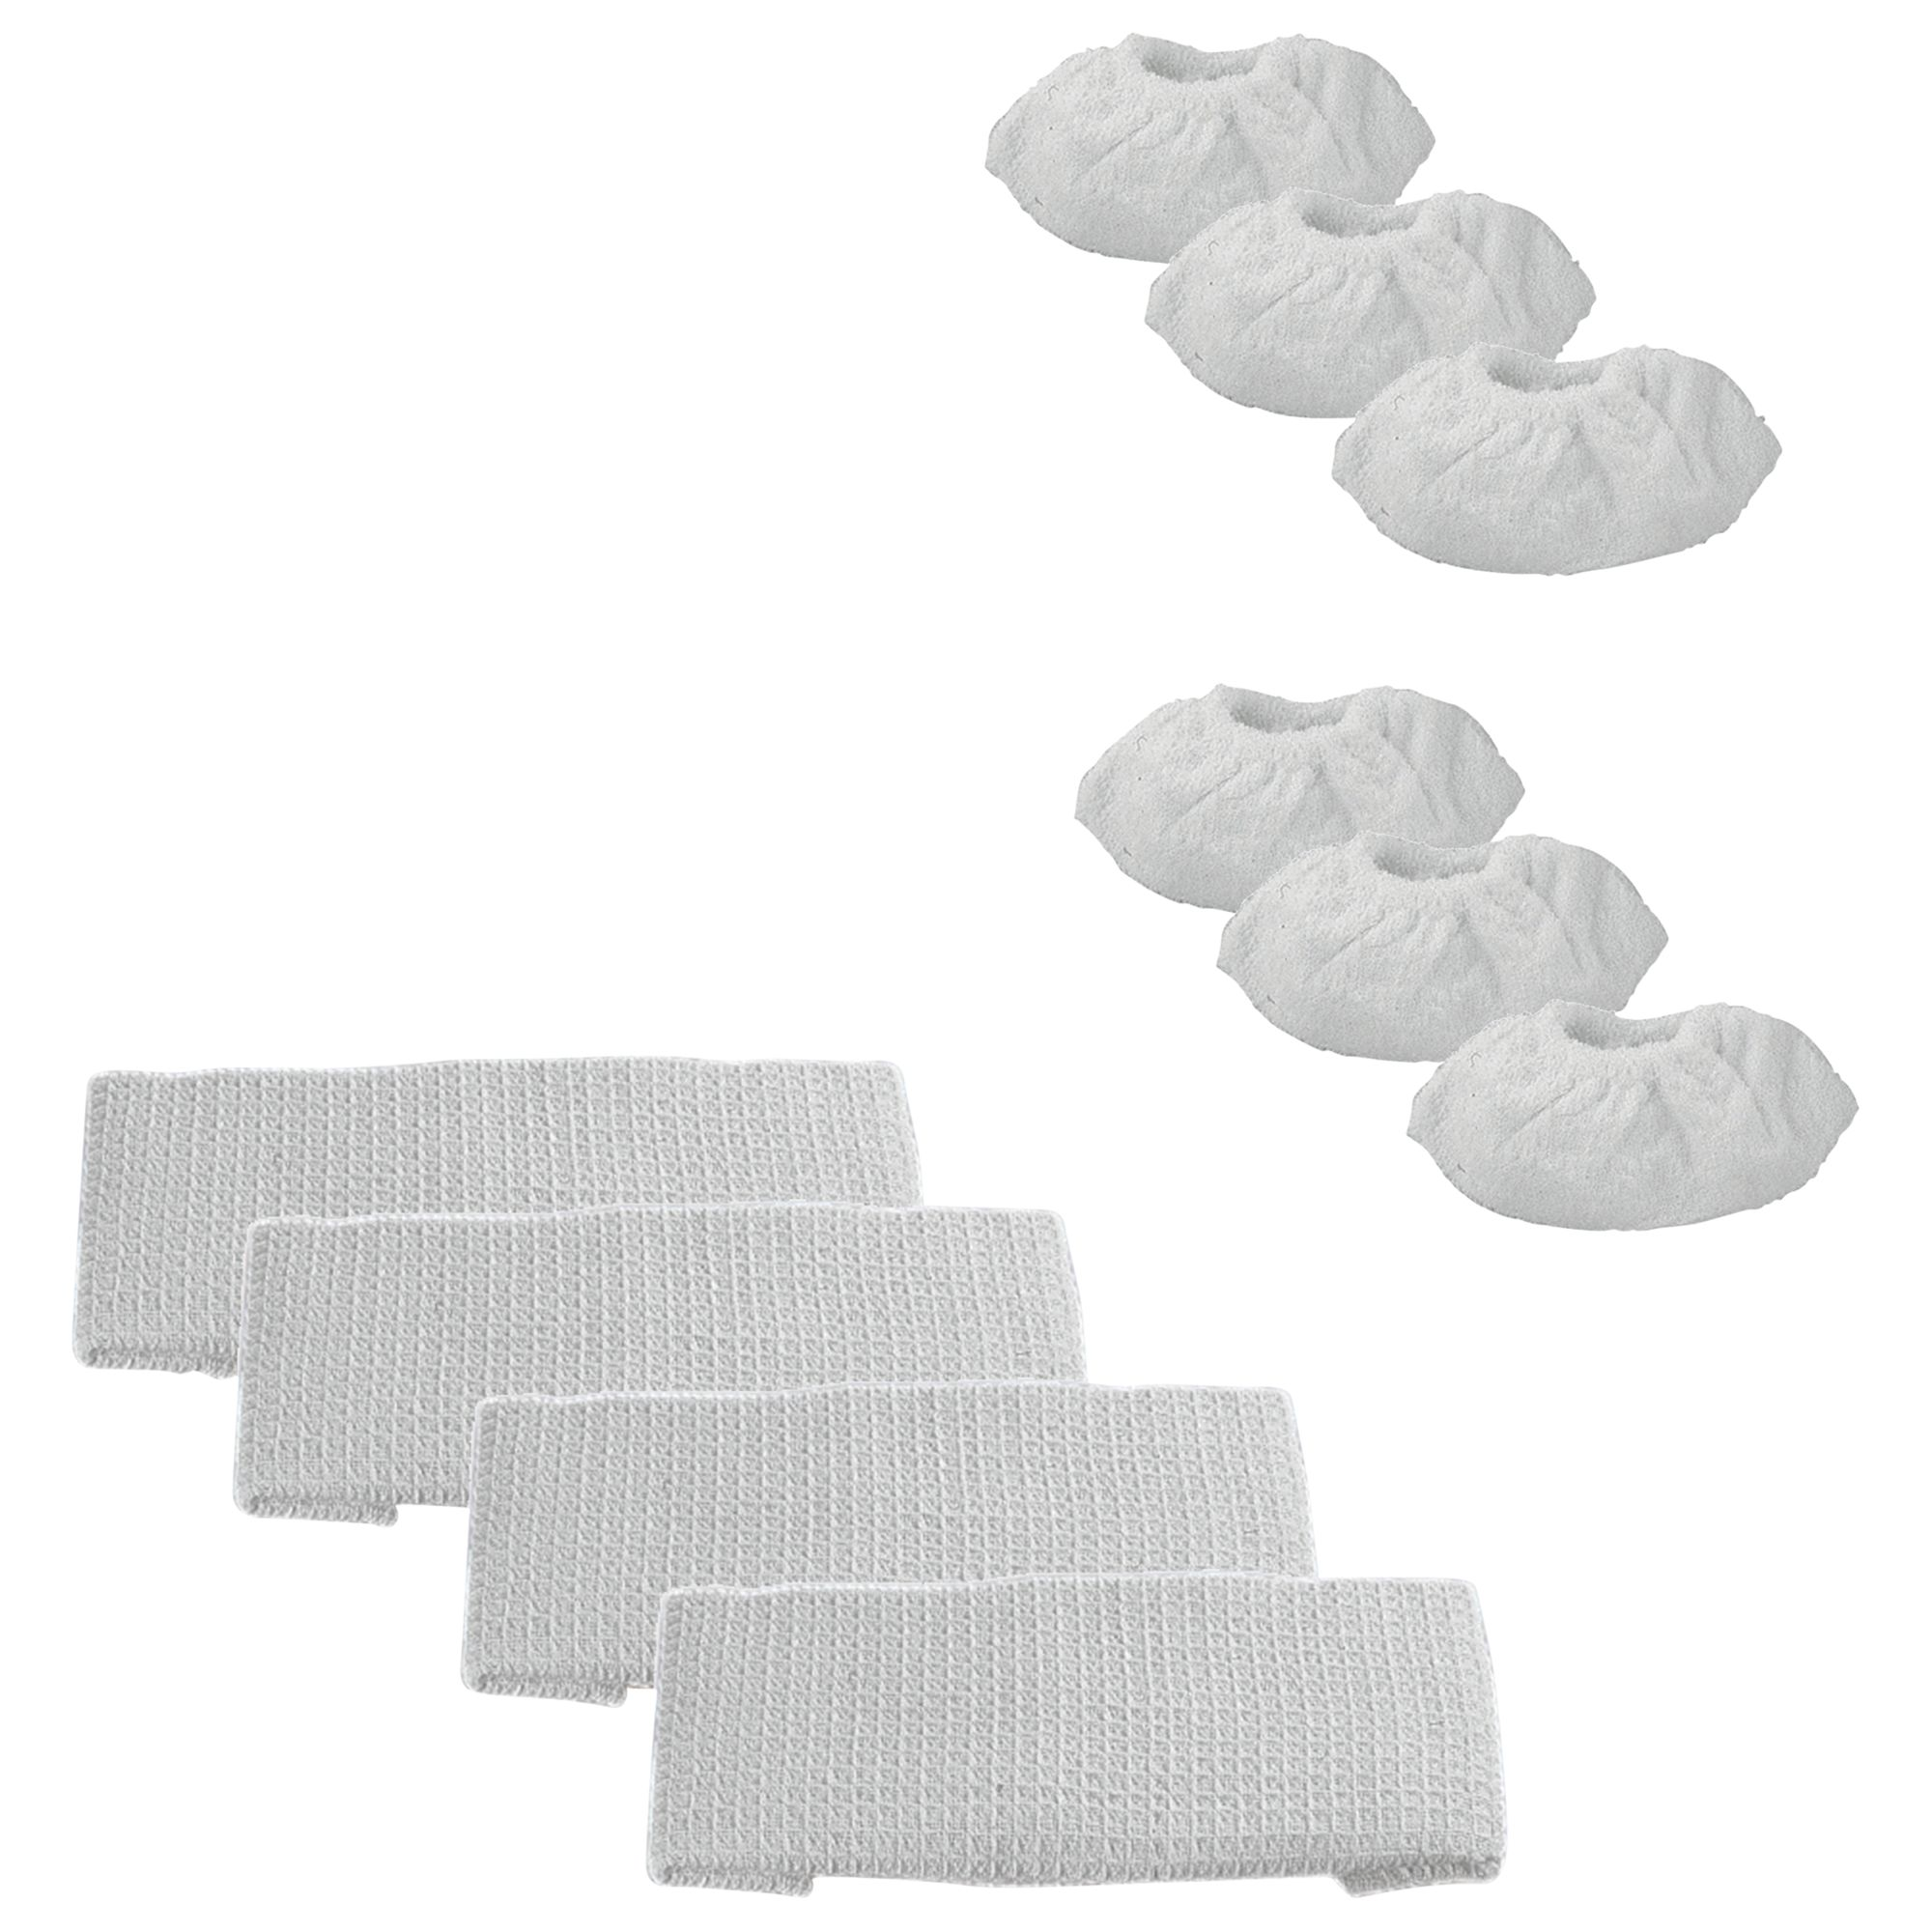 Polti Polti Cloths and Sockettes, Pack of 10